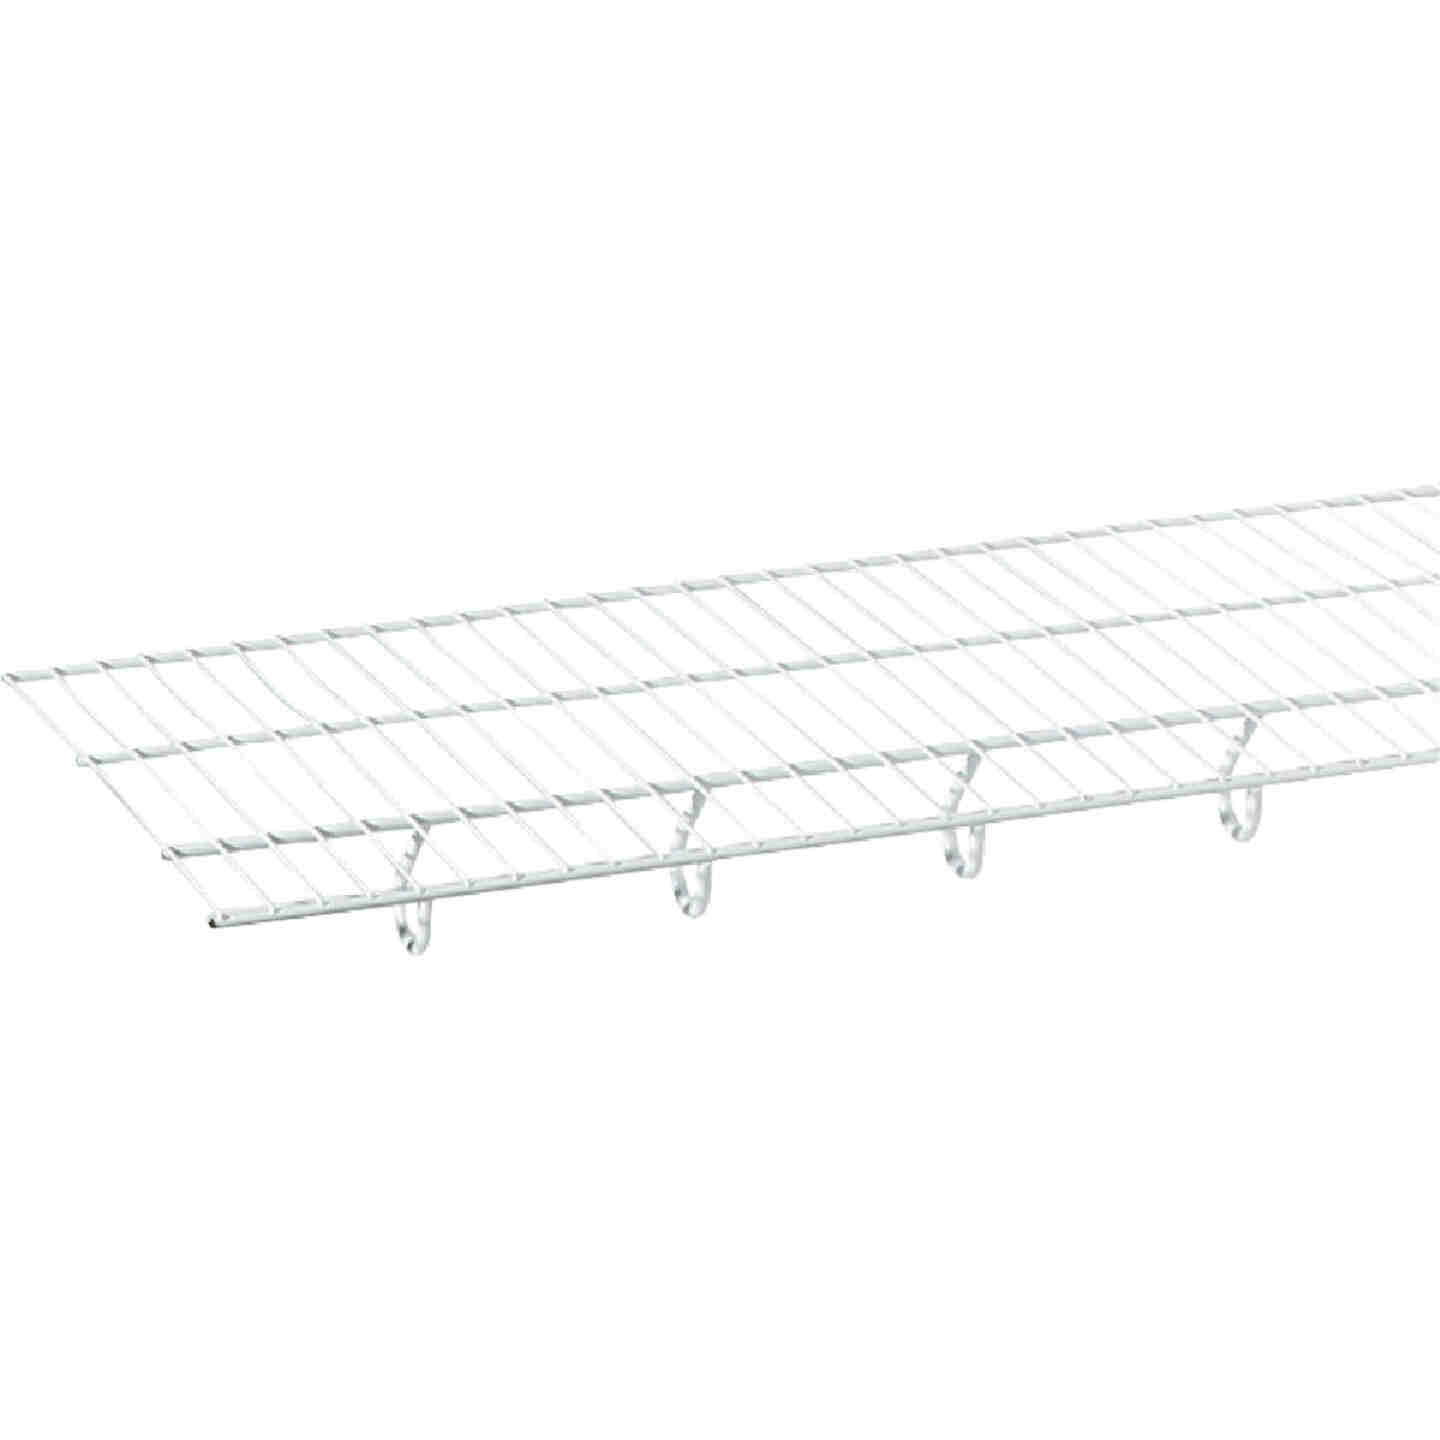 ClosetMaid TotalSlide 12 Ft. W. x 12 In. D. Contractor Pack Ventilated Wire Shelf & Rod, White (6-Pack) Image 5